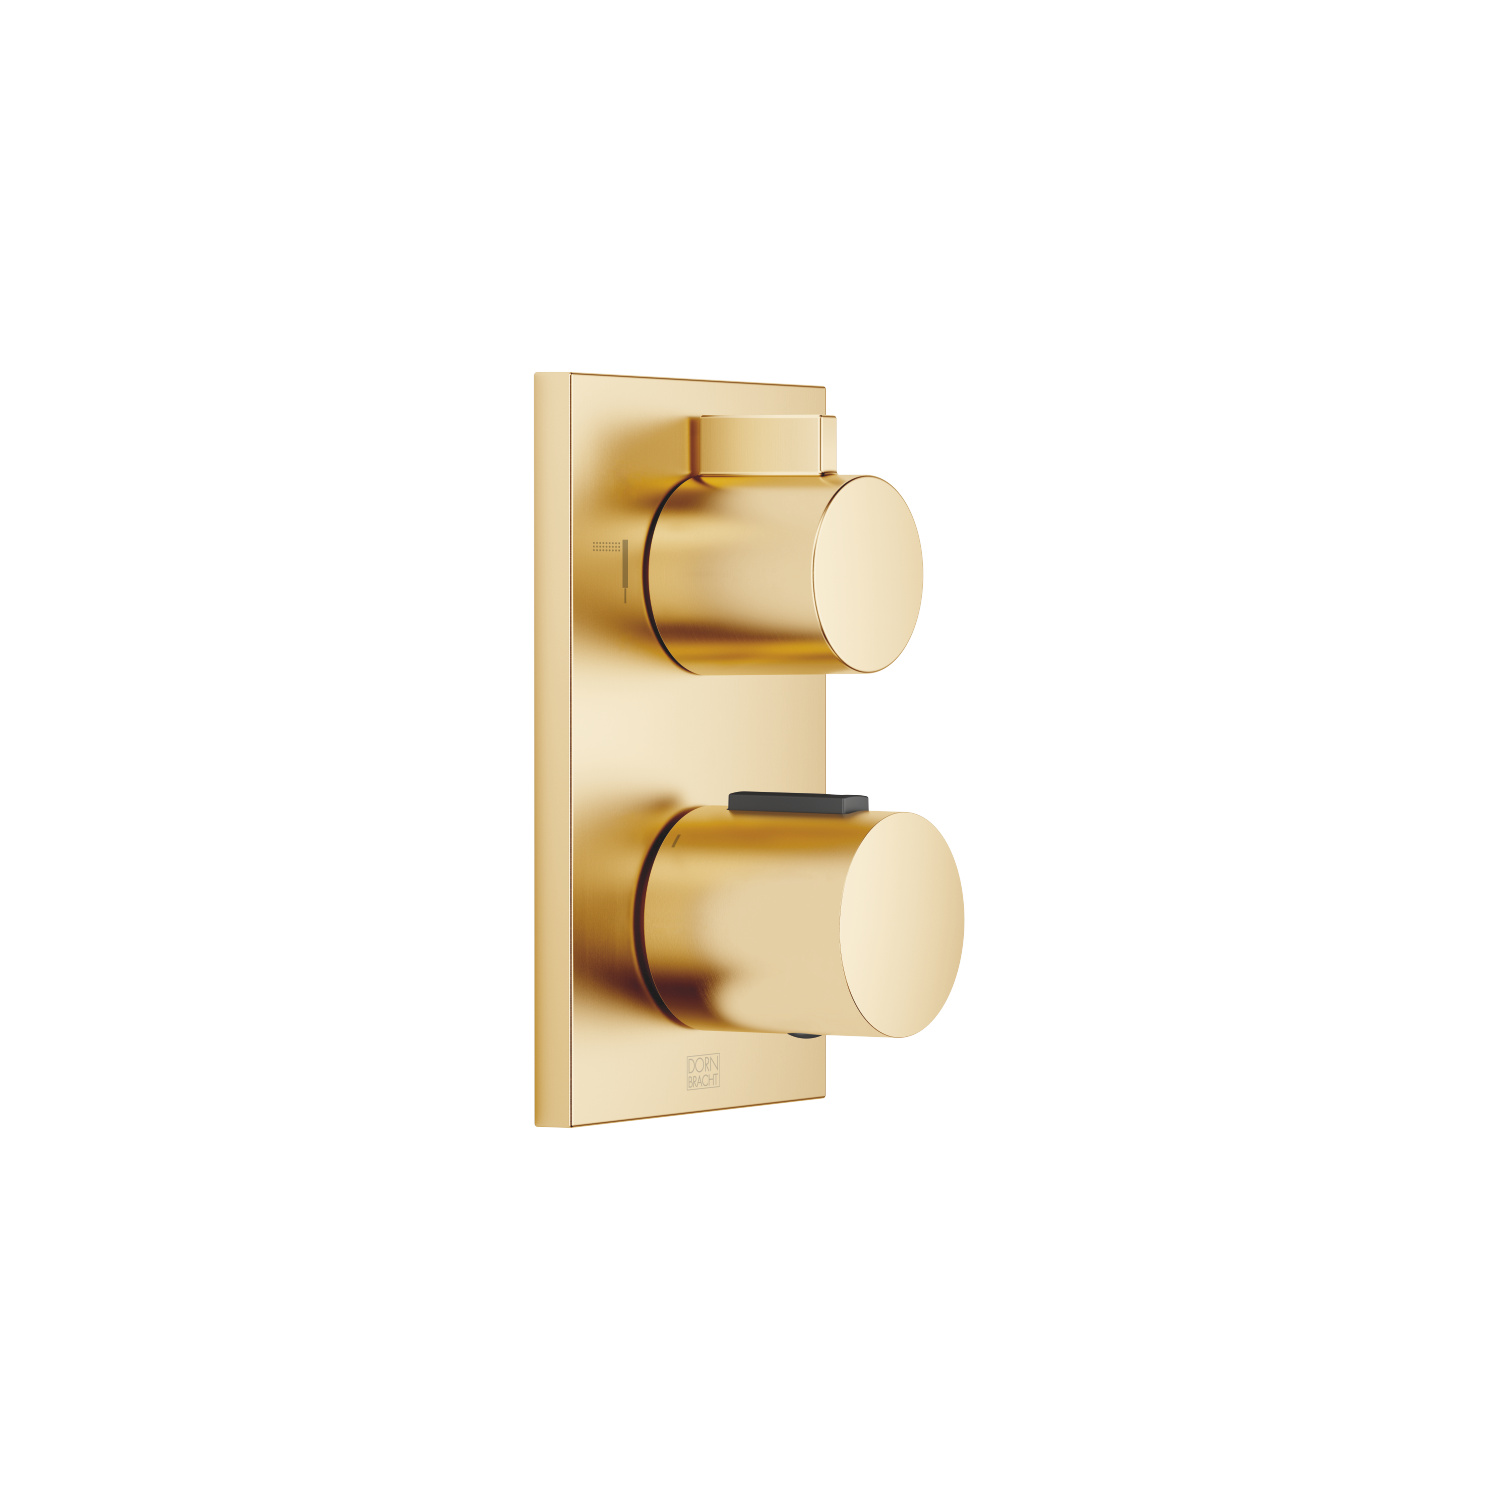 Concealed thermostat with two function volume control - brushed Durabrass